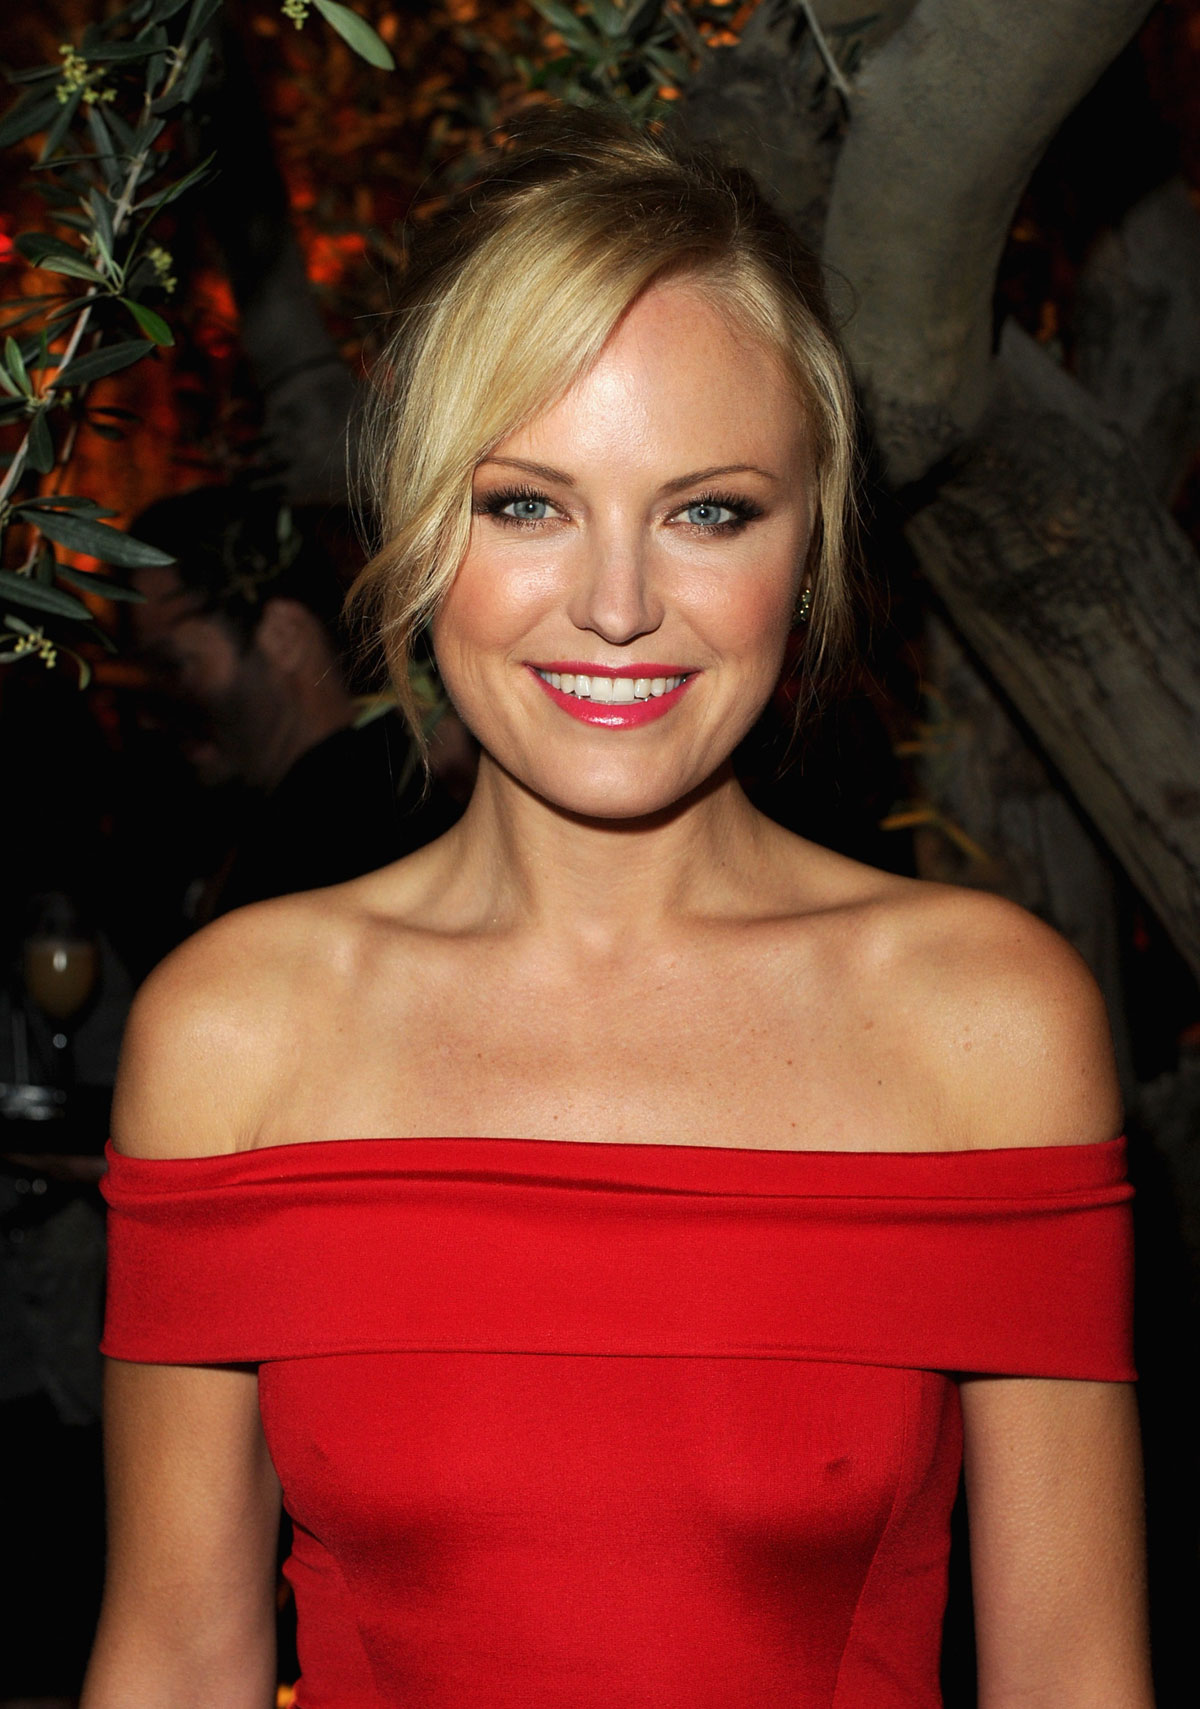 Malin Akerman photo 158 of 364 pics, wallpaper - photo ... Malin Akerman